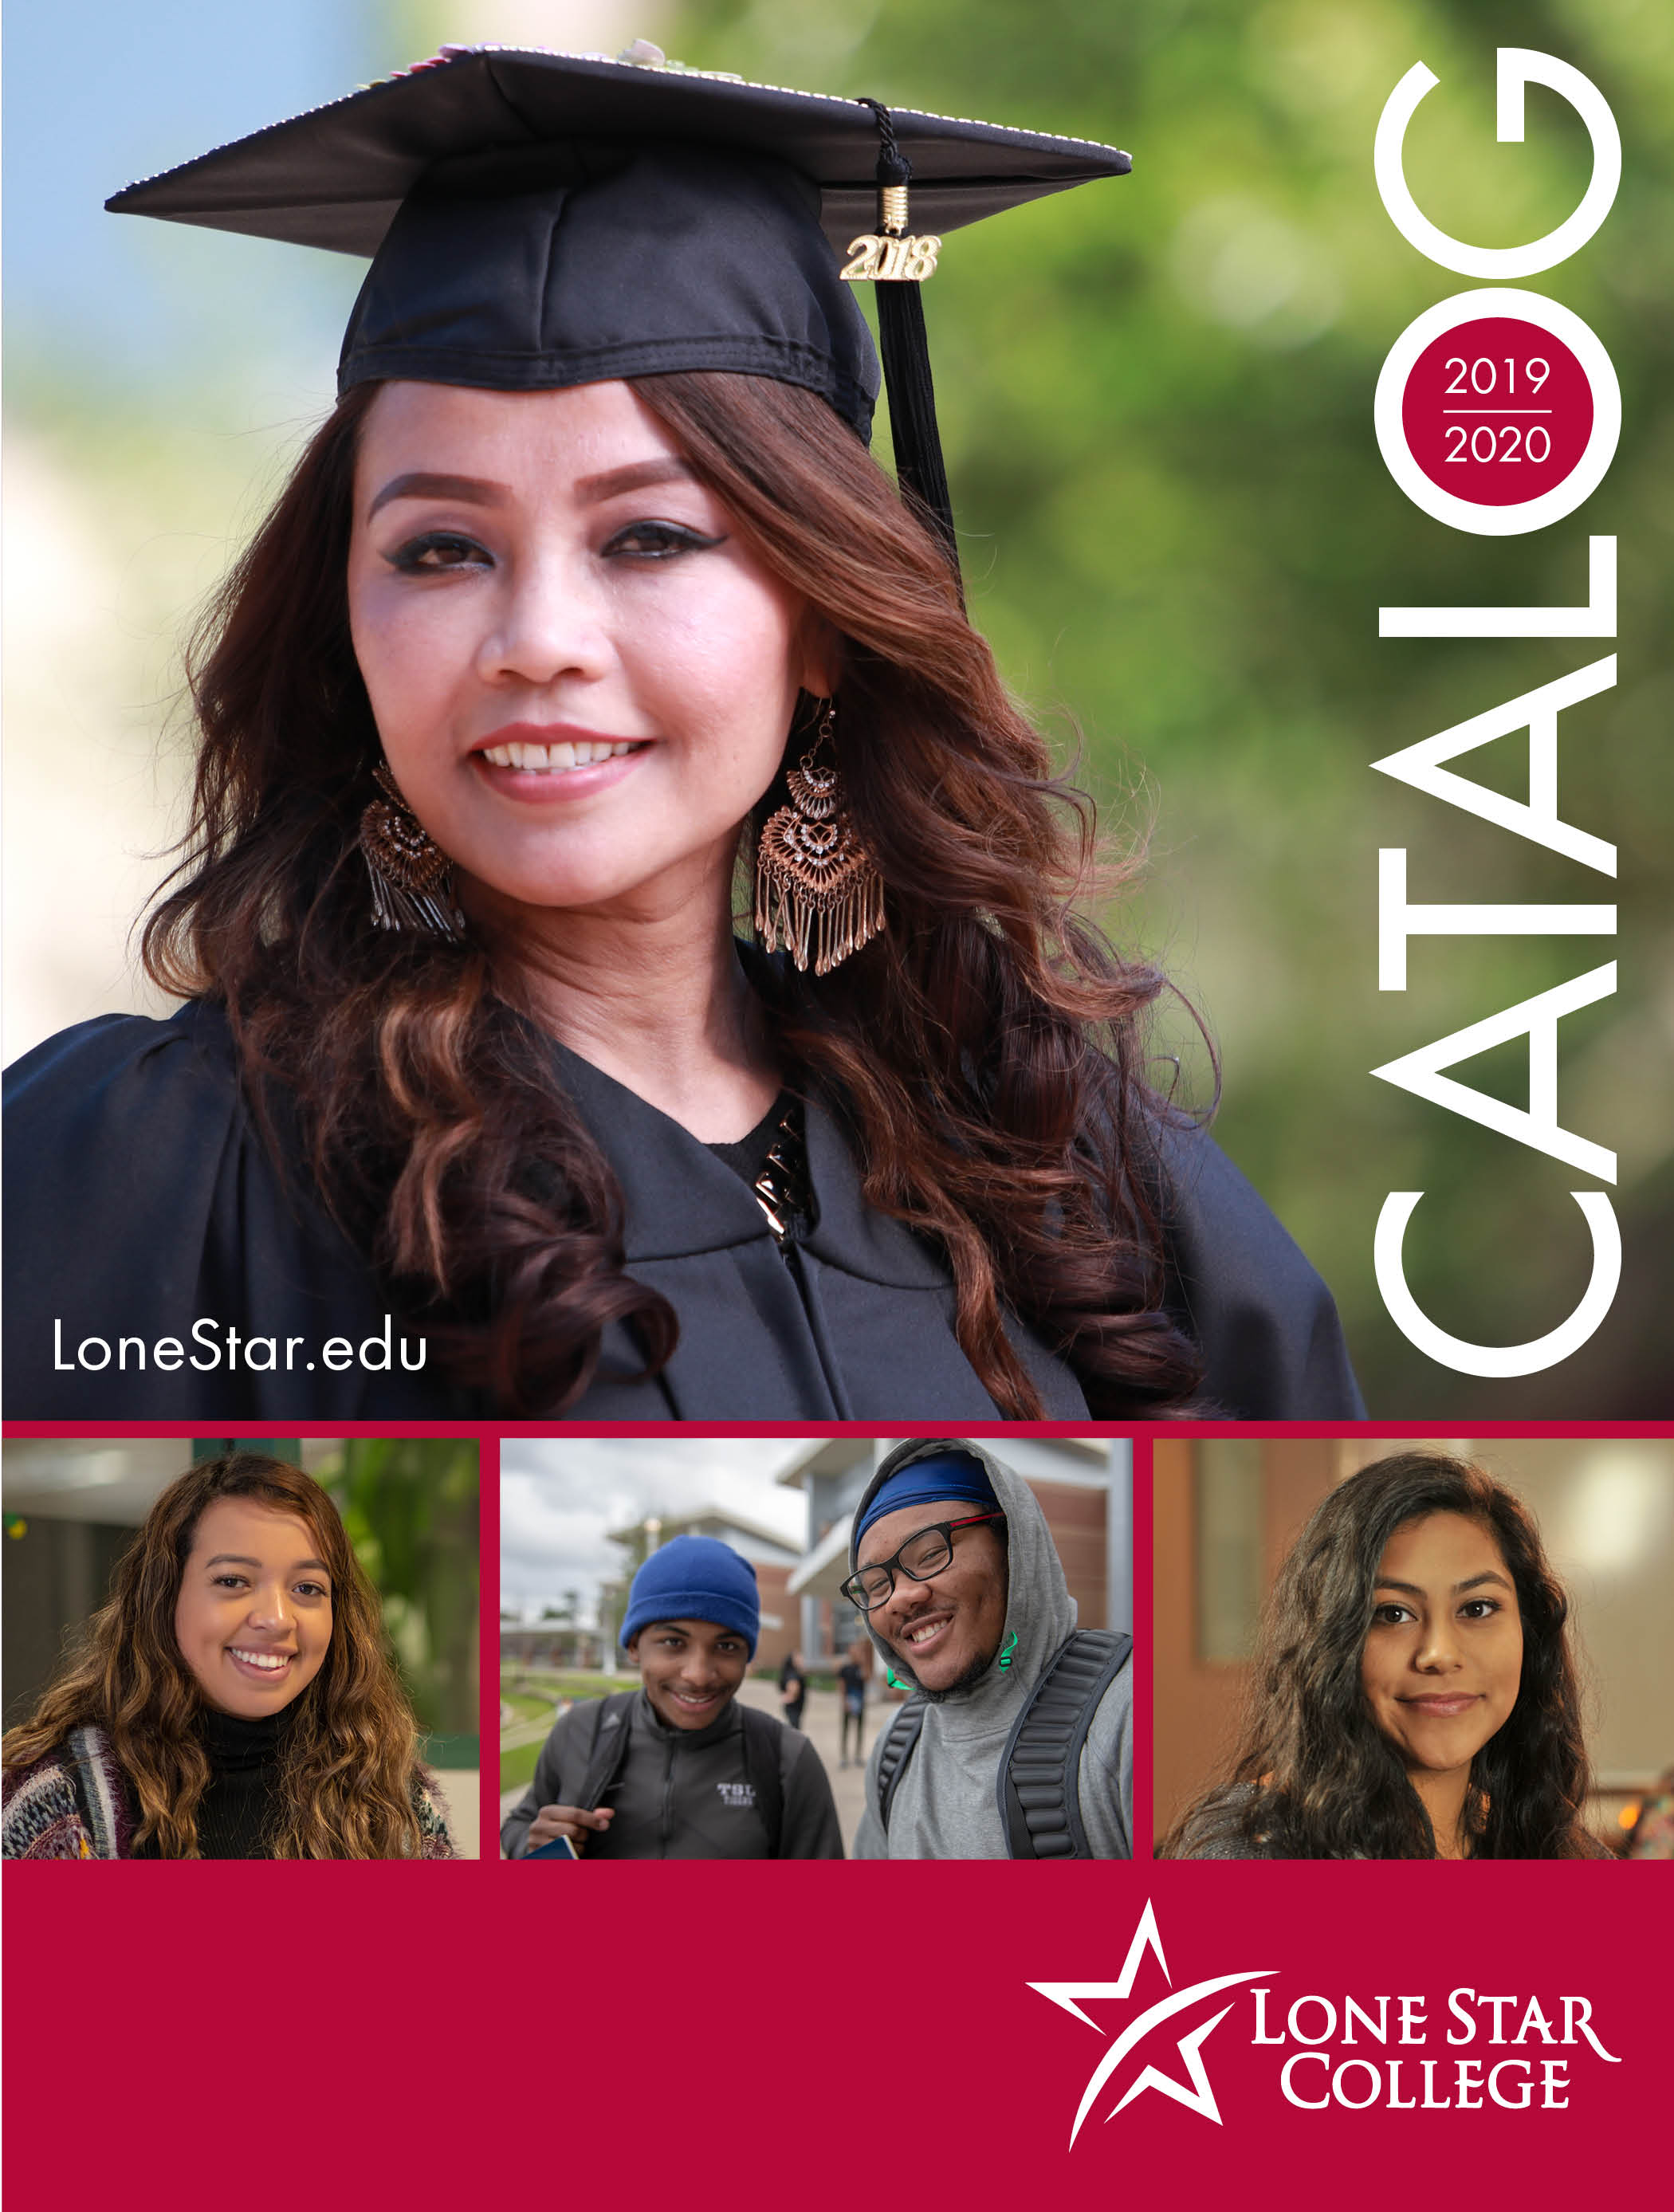 Lone Star College Calendar 2020 2019 2020 Catalog   Lone Star College System   Acalog ACMS™